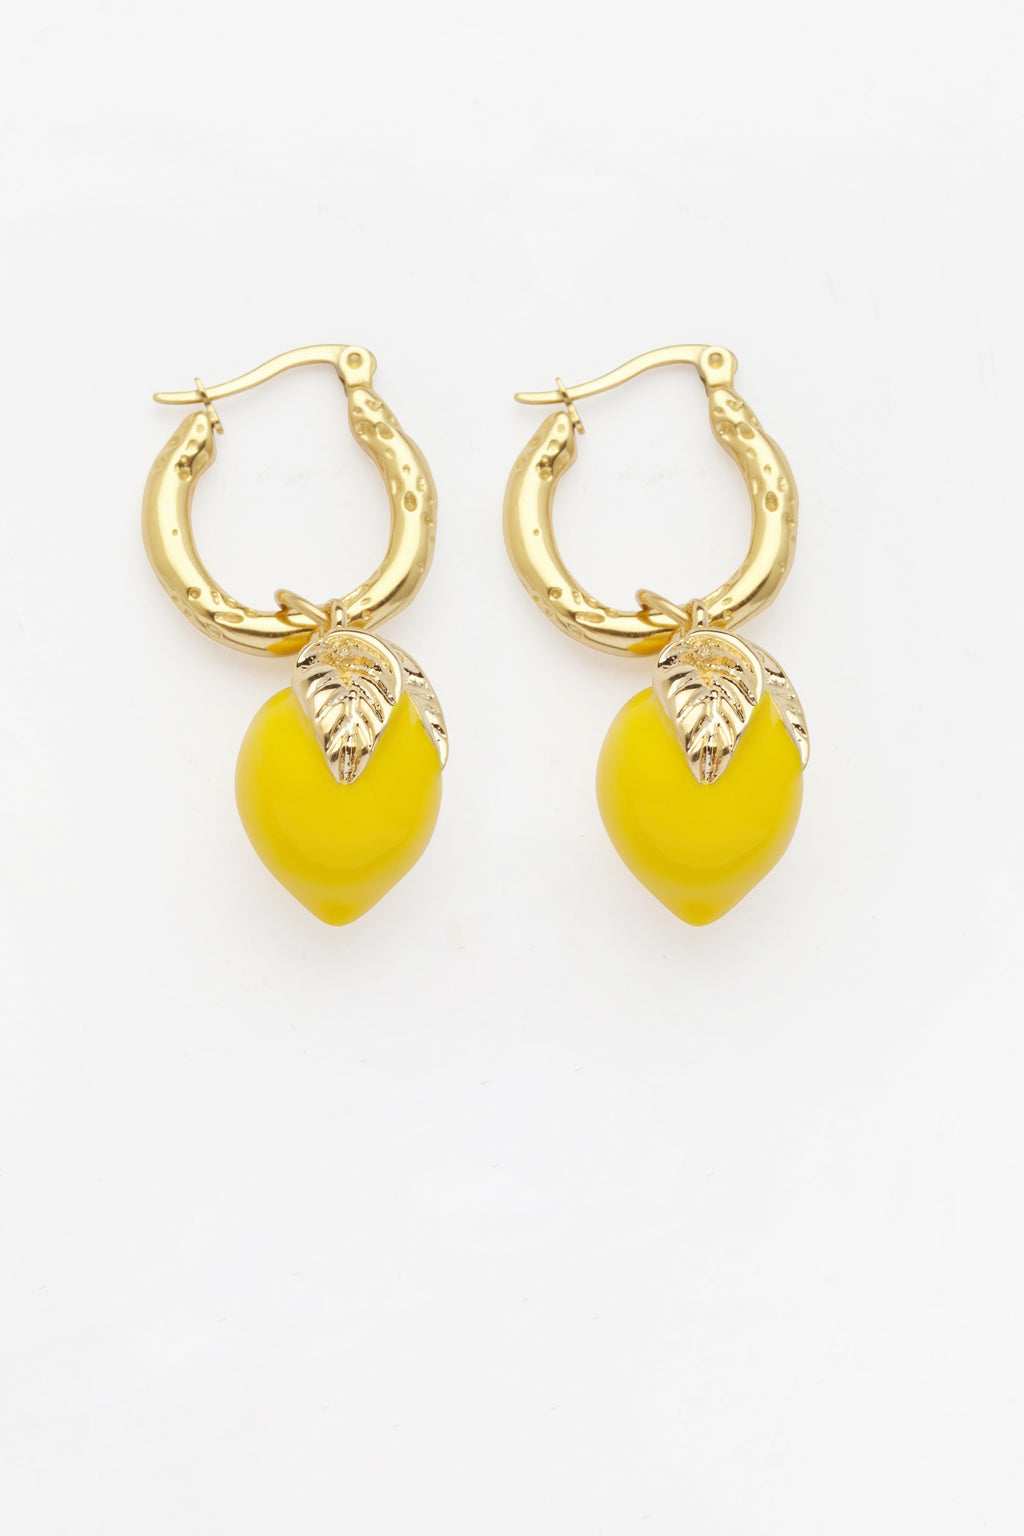 Lemon Charm Earrings